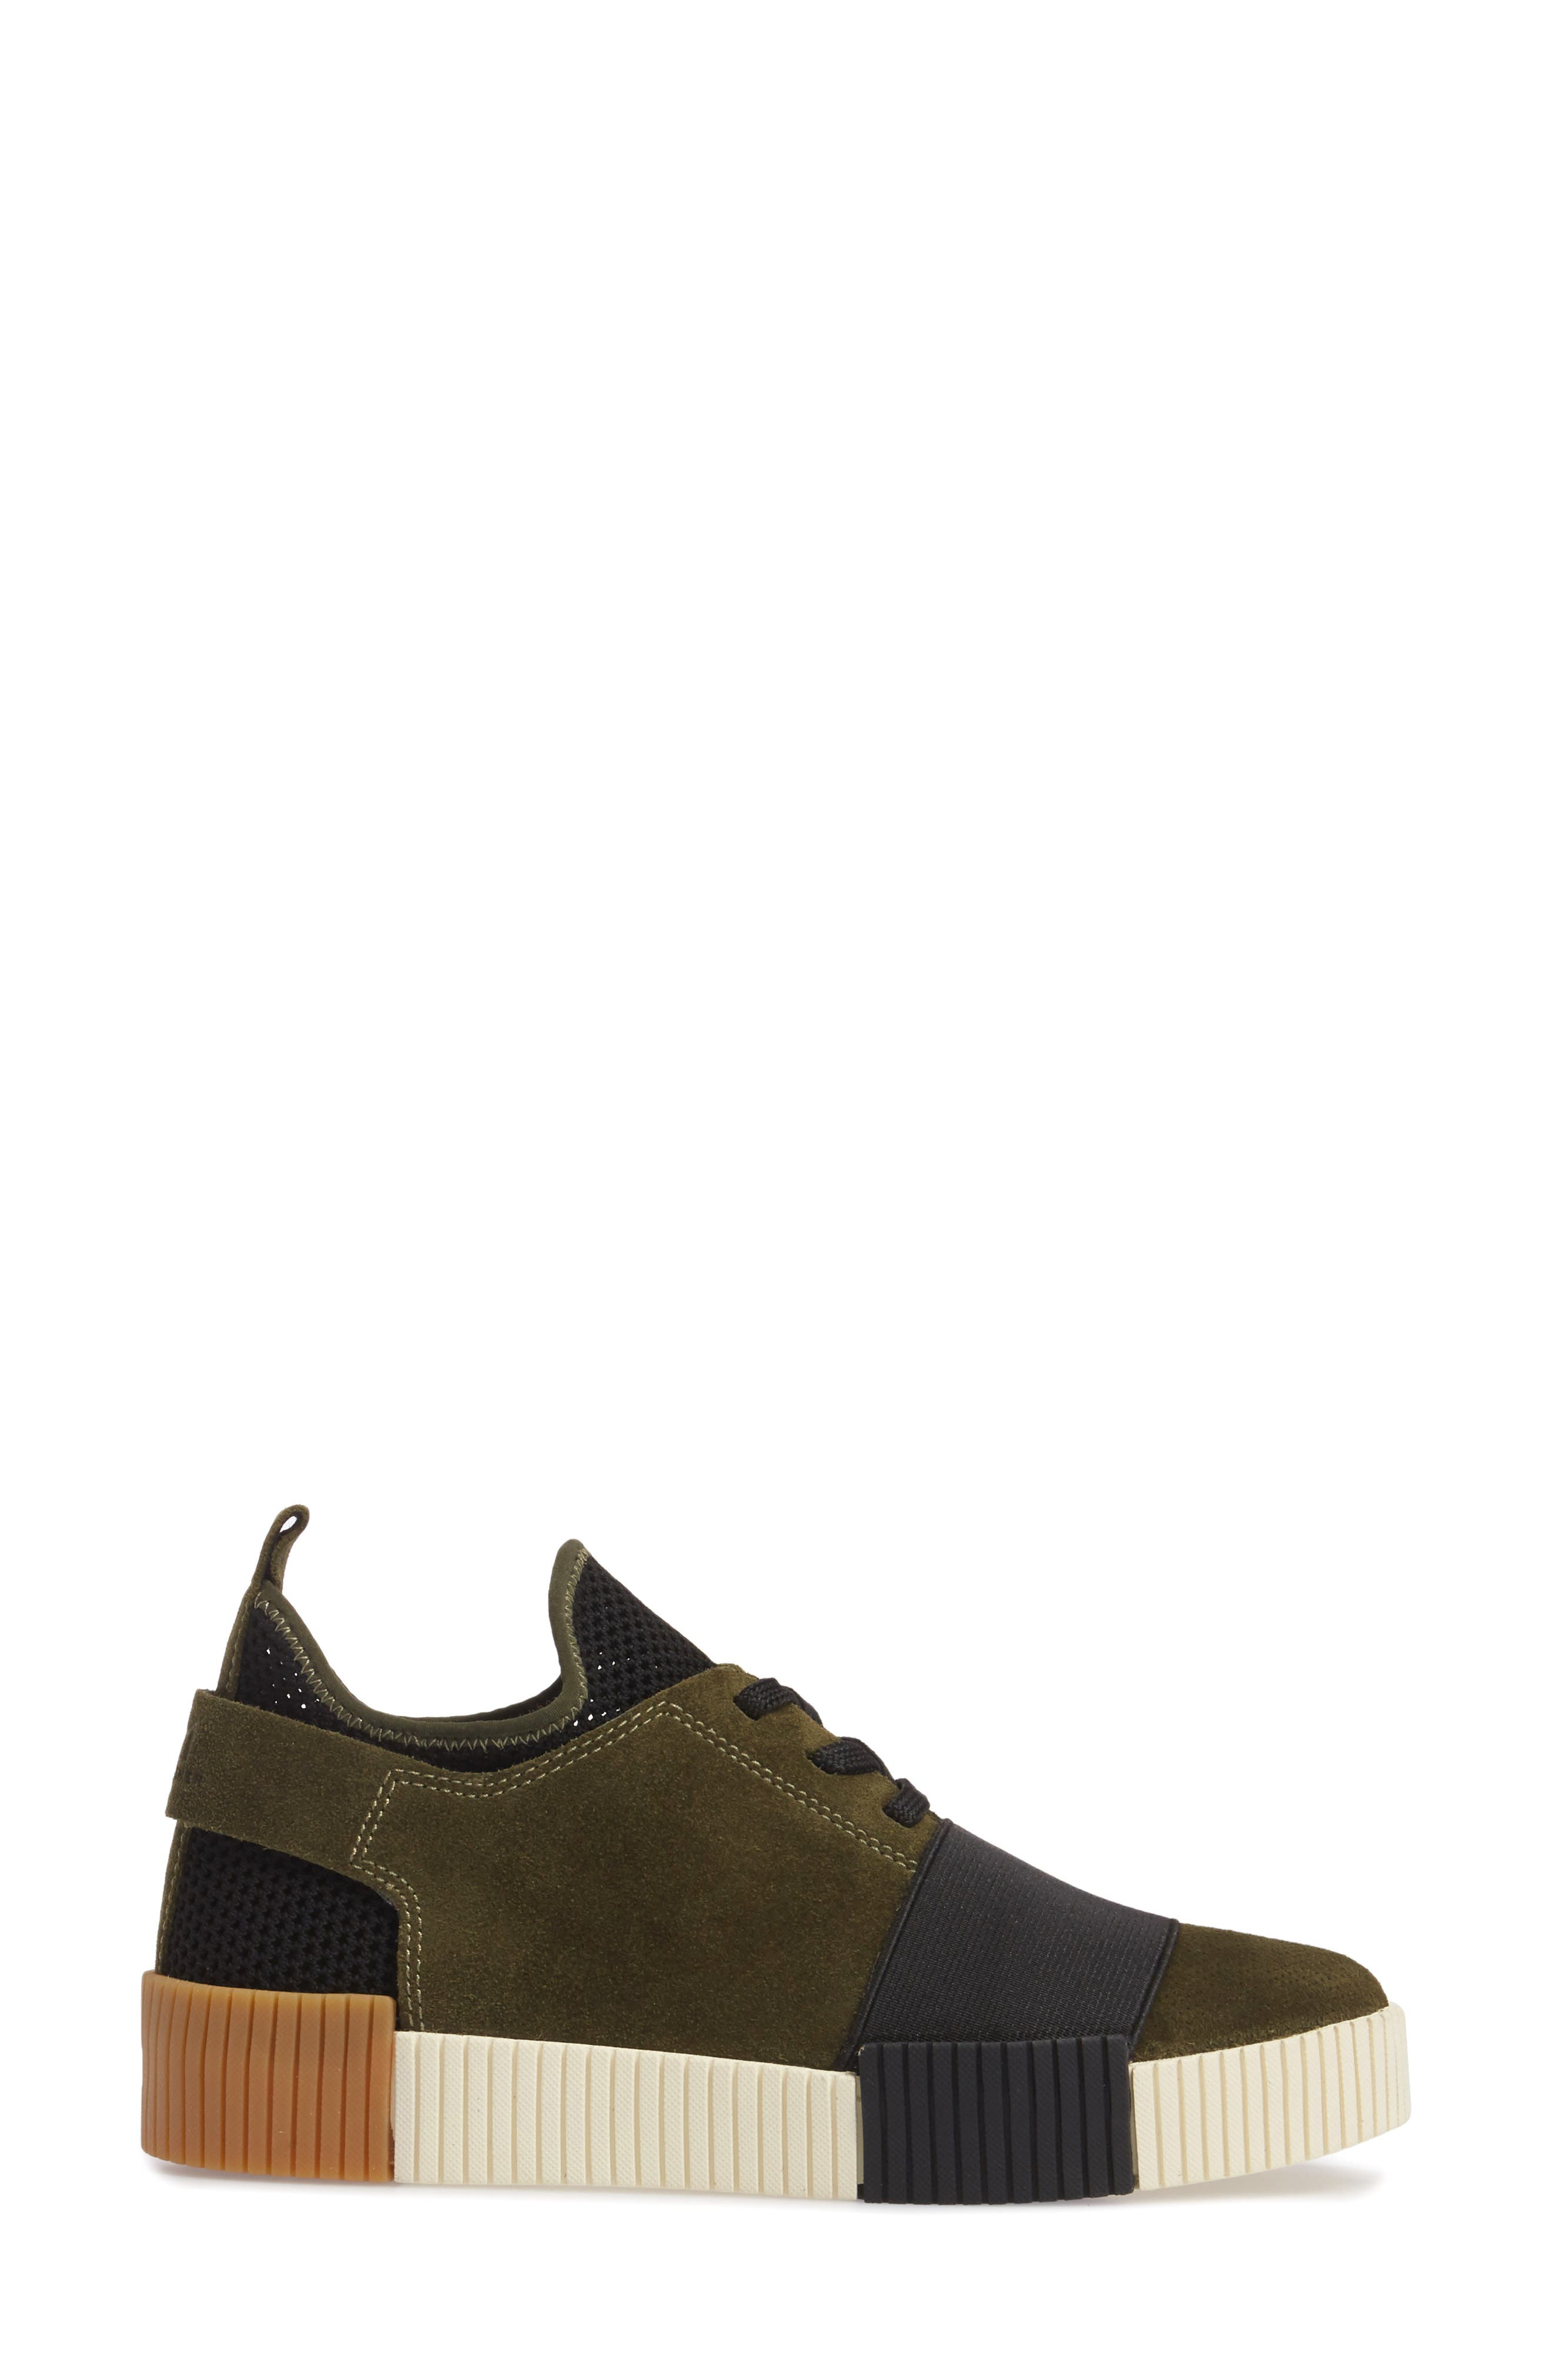 Ryley Platform Sneaker,                             Alternate thumbnail 3, color,                             Green Leather